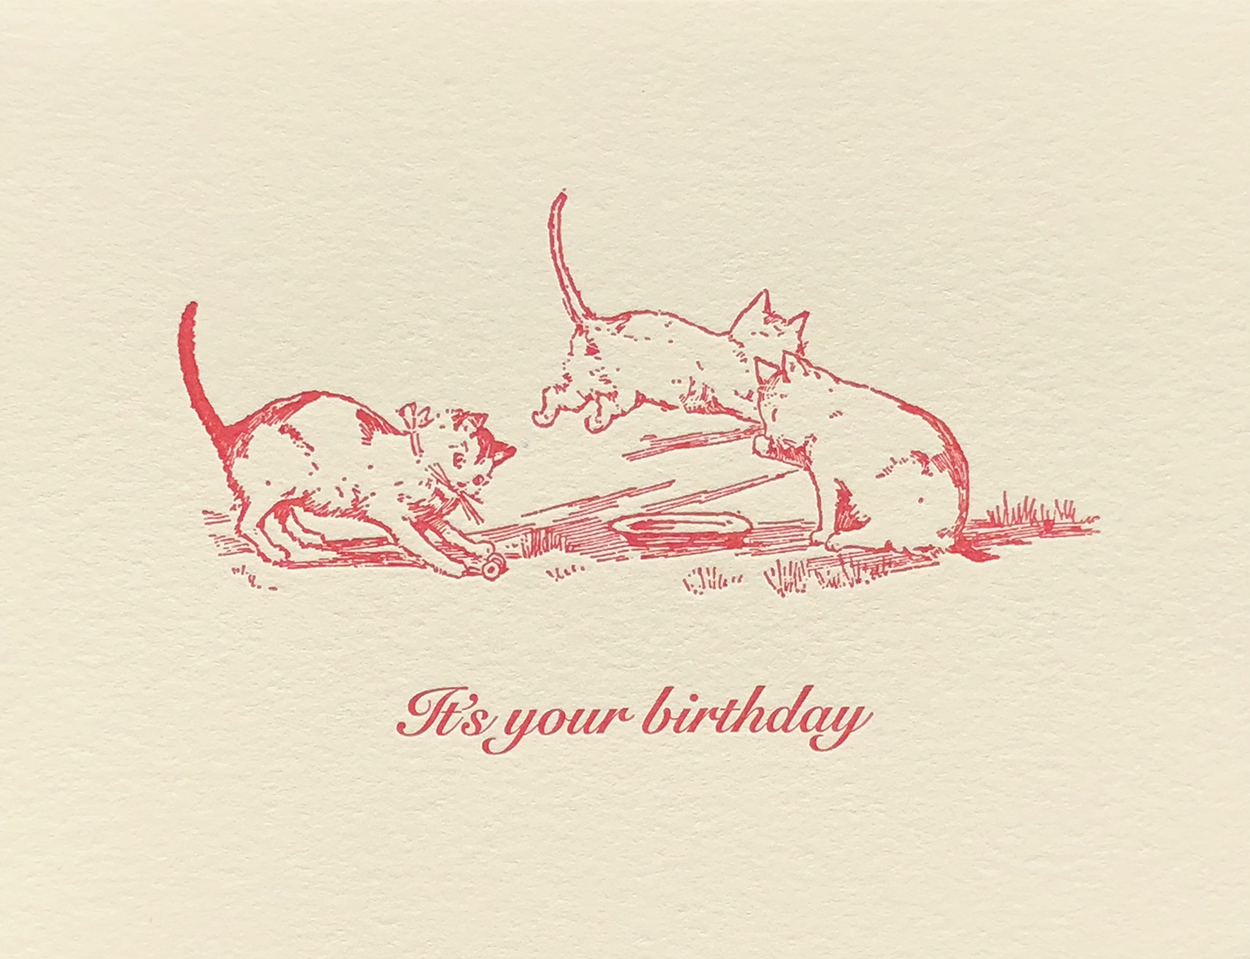 It's your birthday (Inside greeting: Lap it up!)